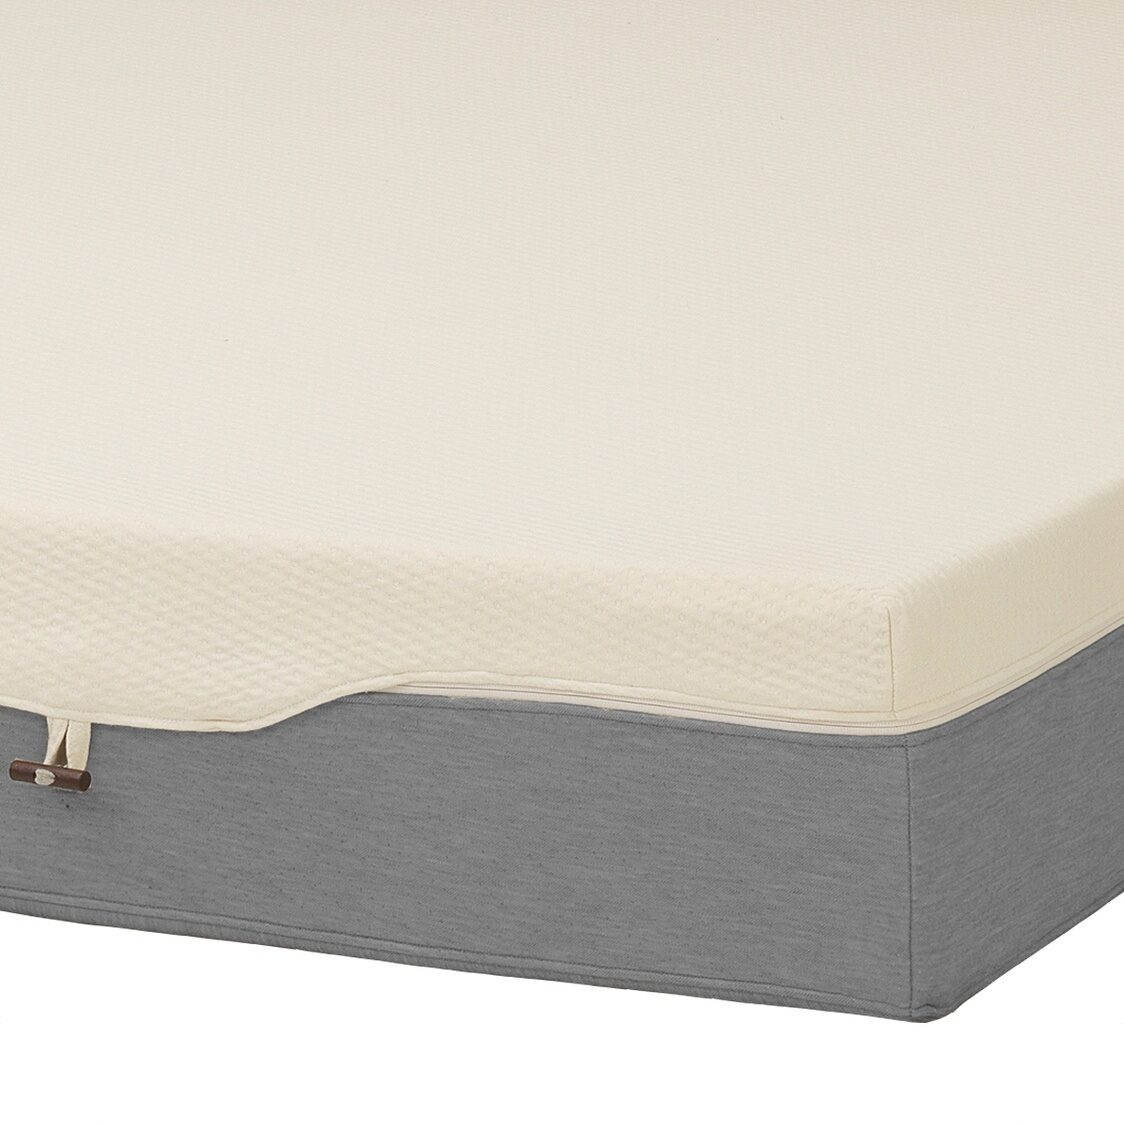 Slou Mattress 1S1 Light Grey